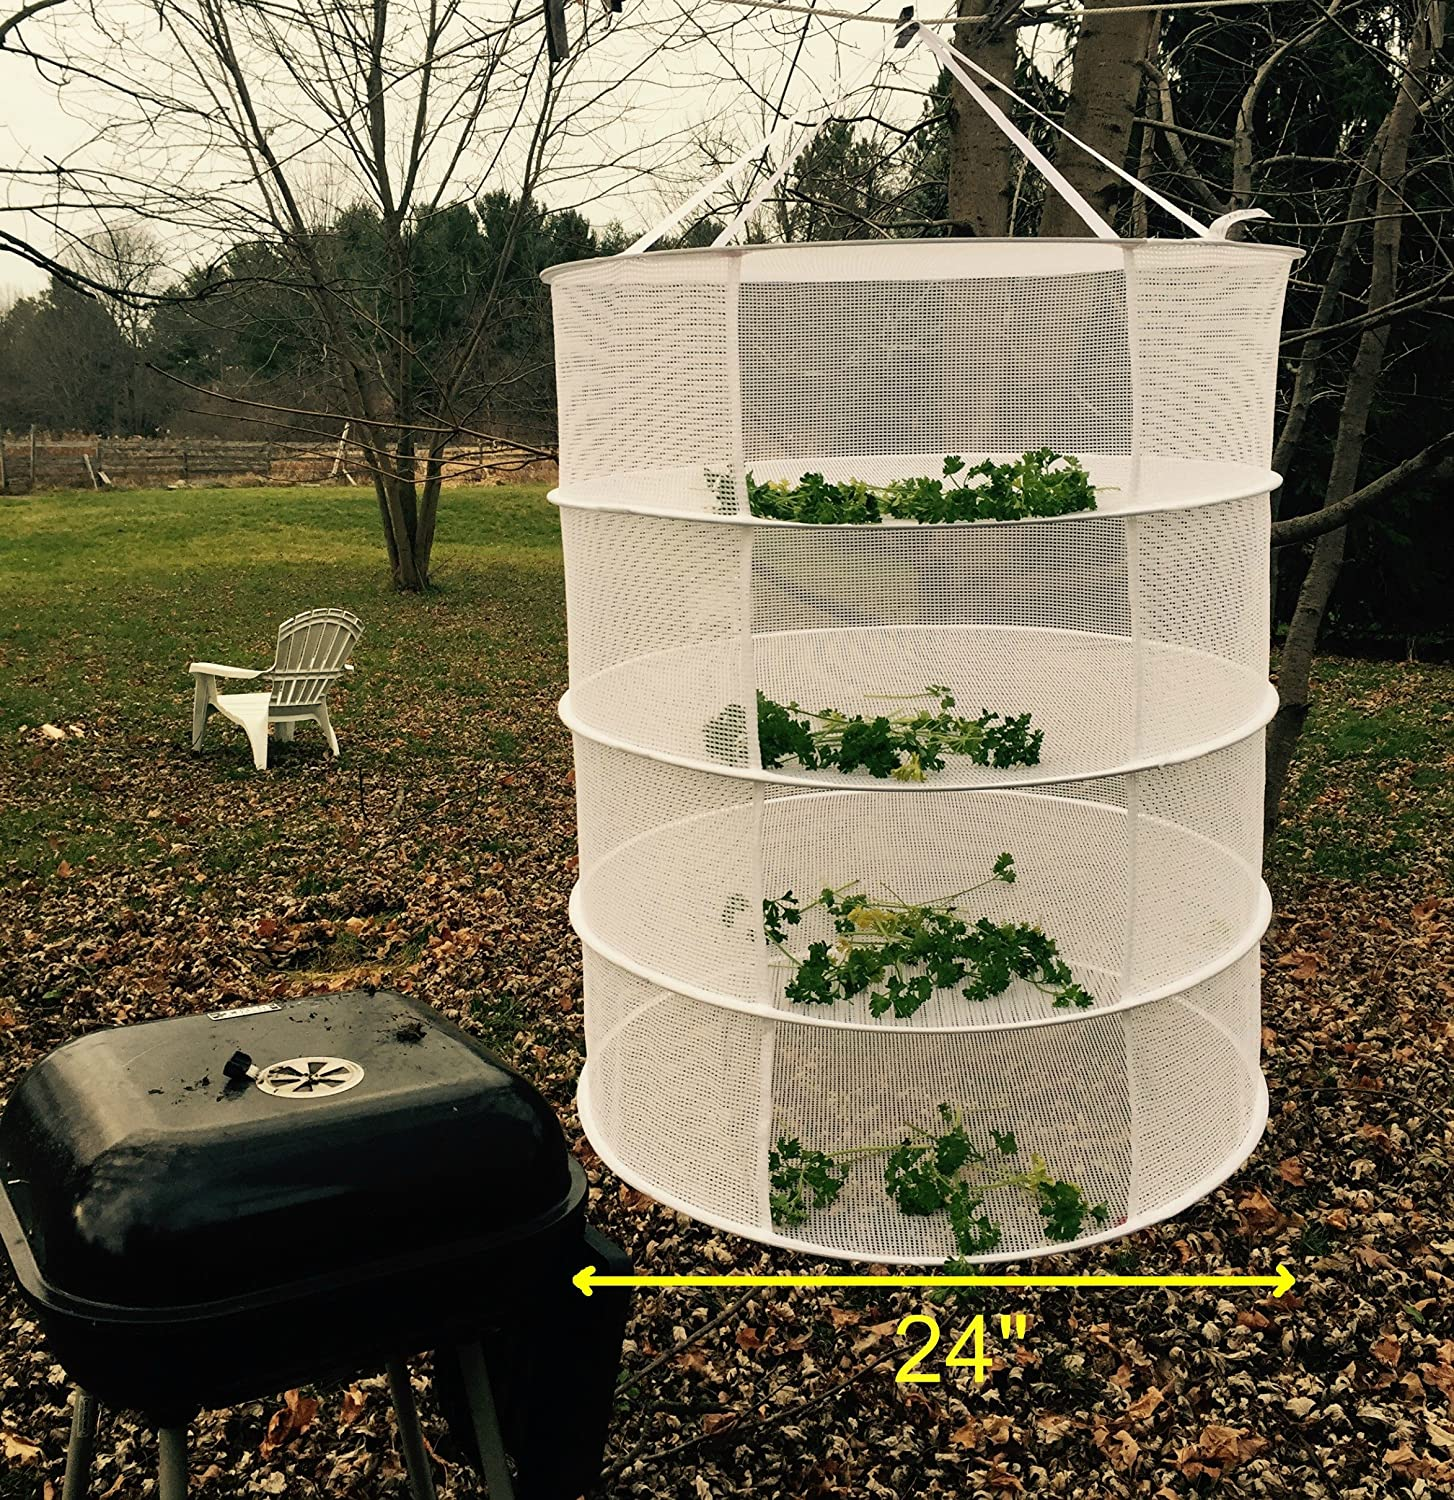 Amazon.com  Herb Quick Cure Hanging Drying Rack Bud and Plant Hang Dryer Net Rack 4 Tier Christmas Gifts Gardening Gifts for Mom or Grandma + Carrying Case ... & Amazon.com : Herb Quick Cure Hanging Drying Rack Bud and Plant ...